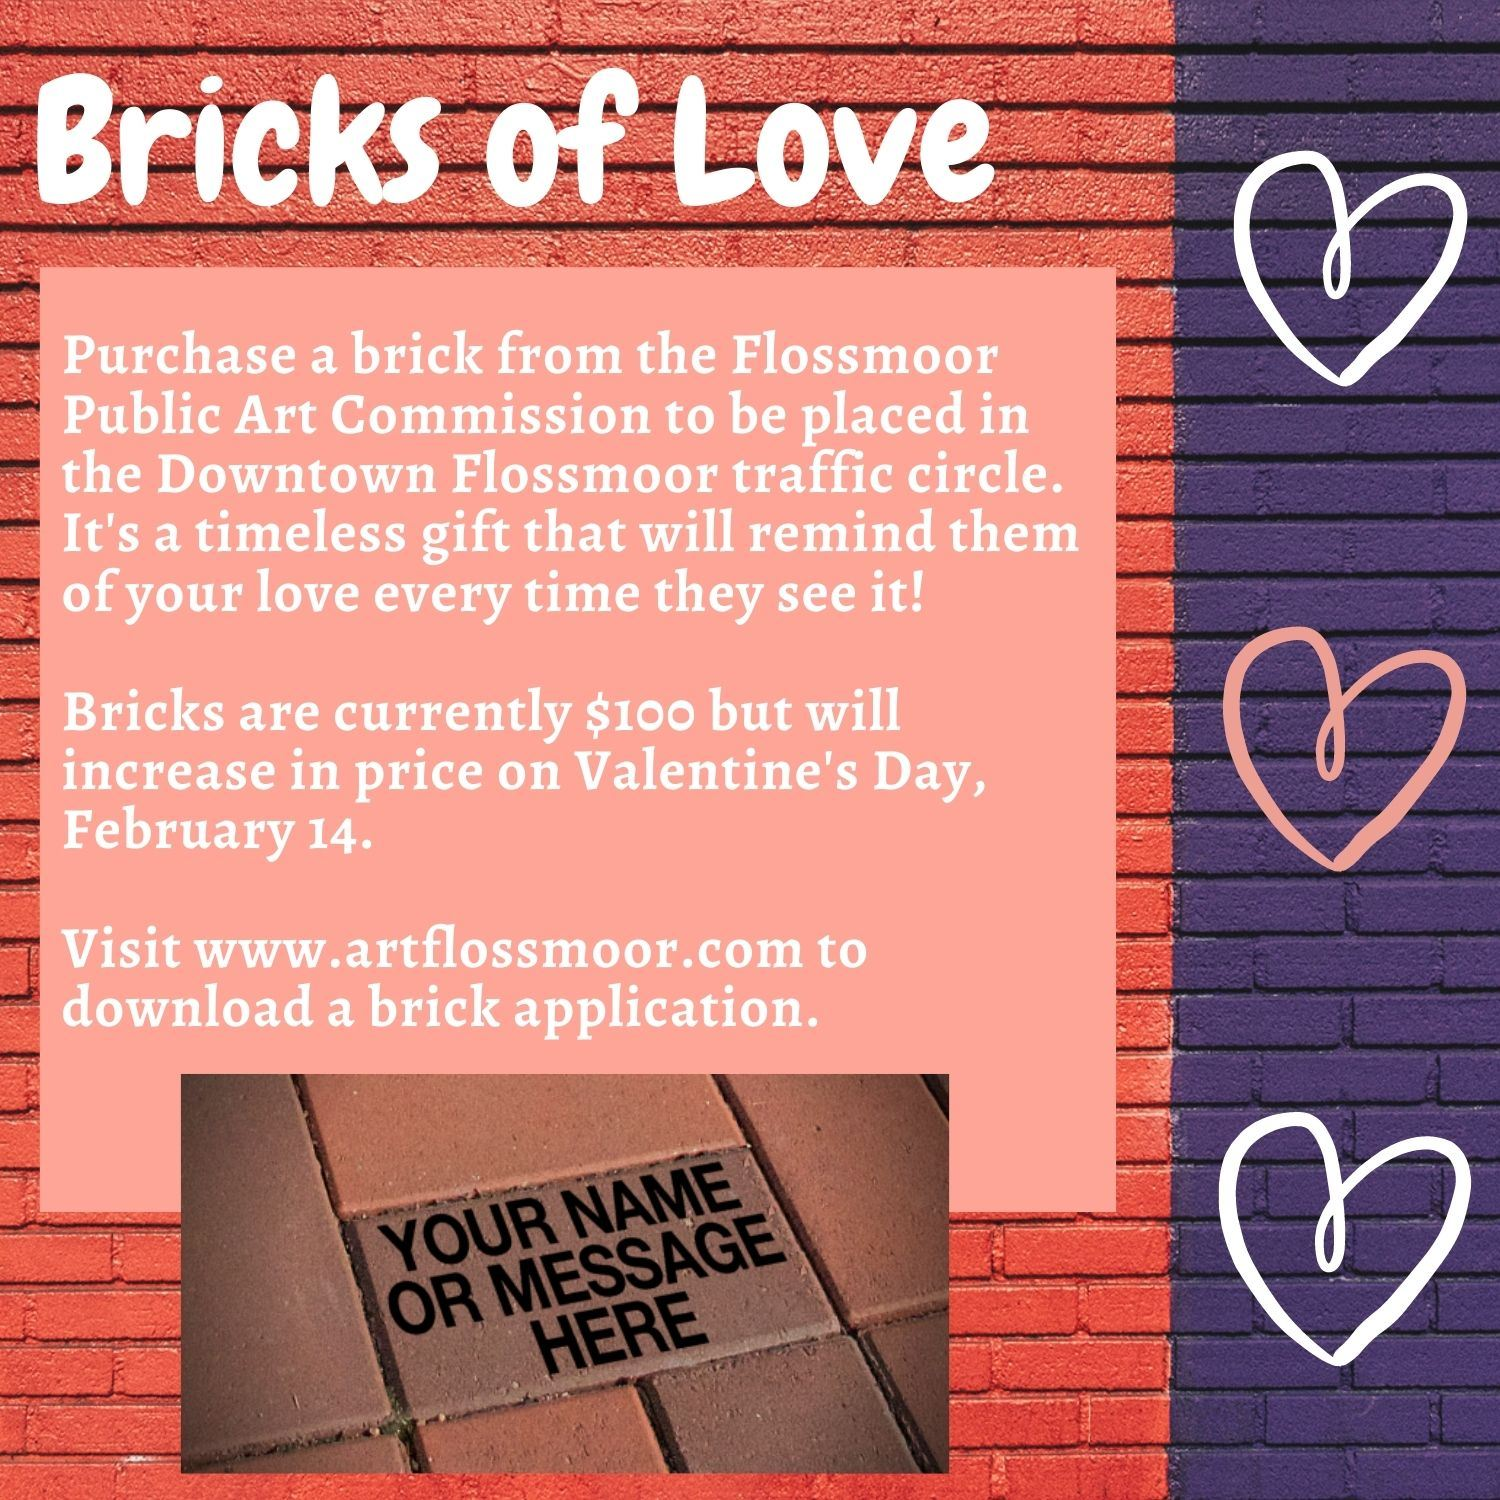 Bricks of Love flyer